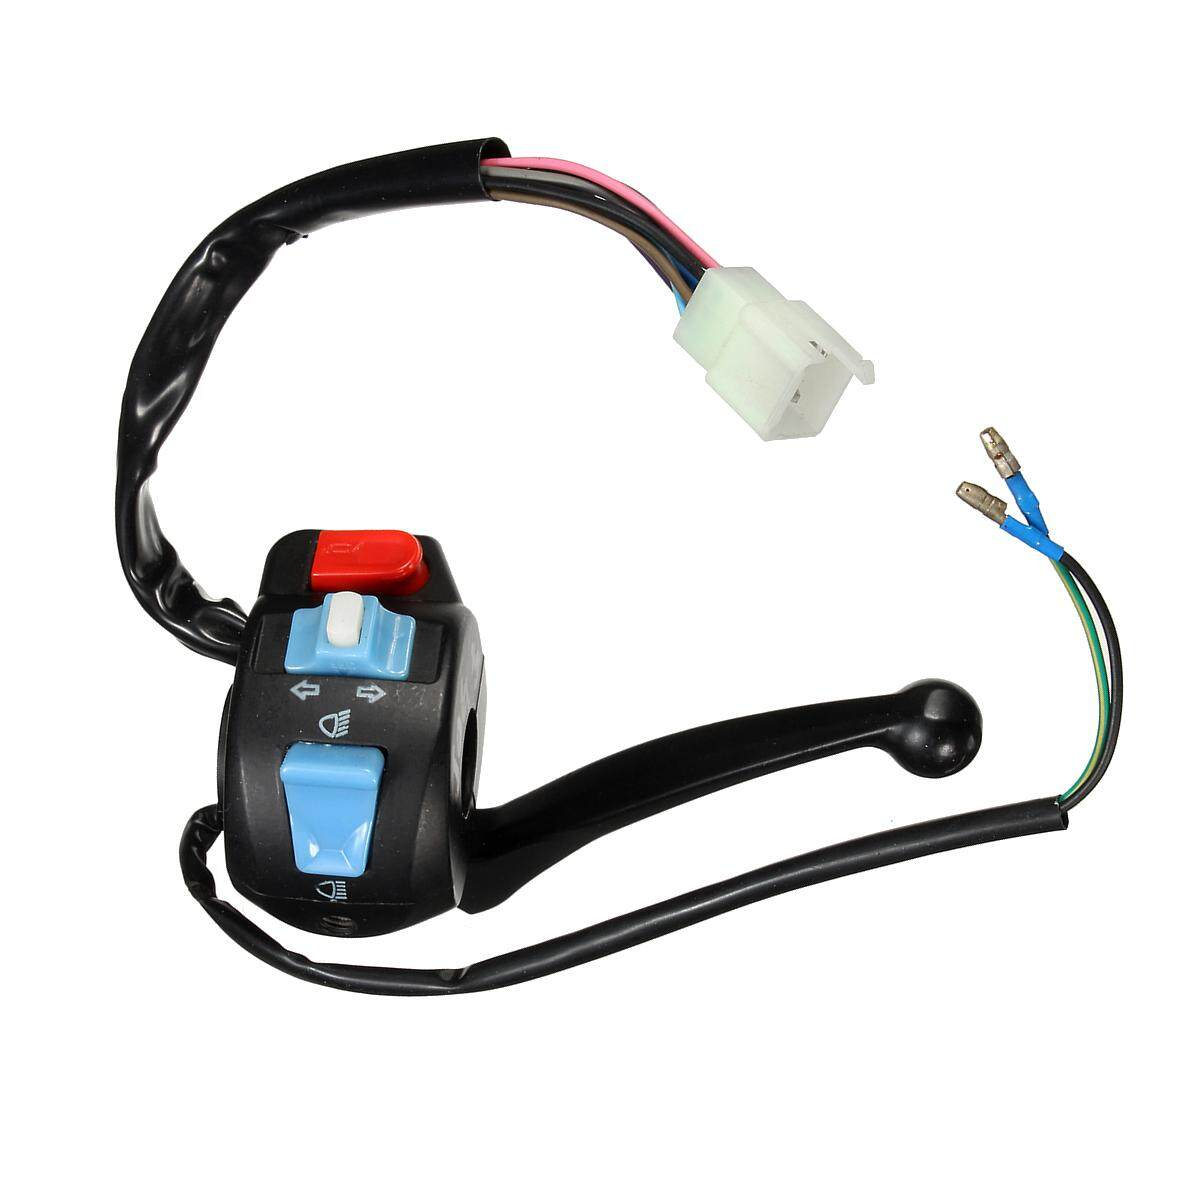 【Free Shipping +Global Collection】Left Light Switch Control Brake Lever For GY6 50 150 Scooter Moped Parts New